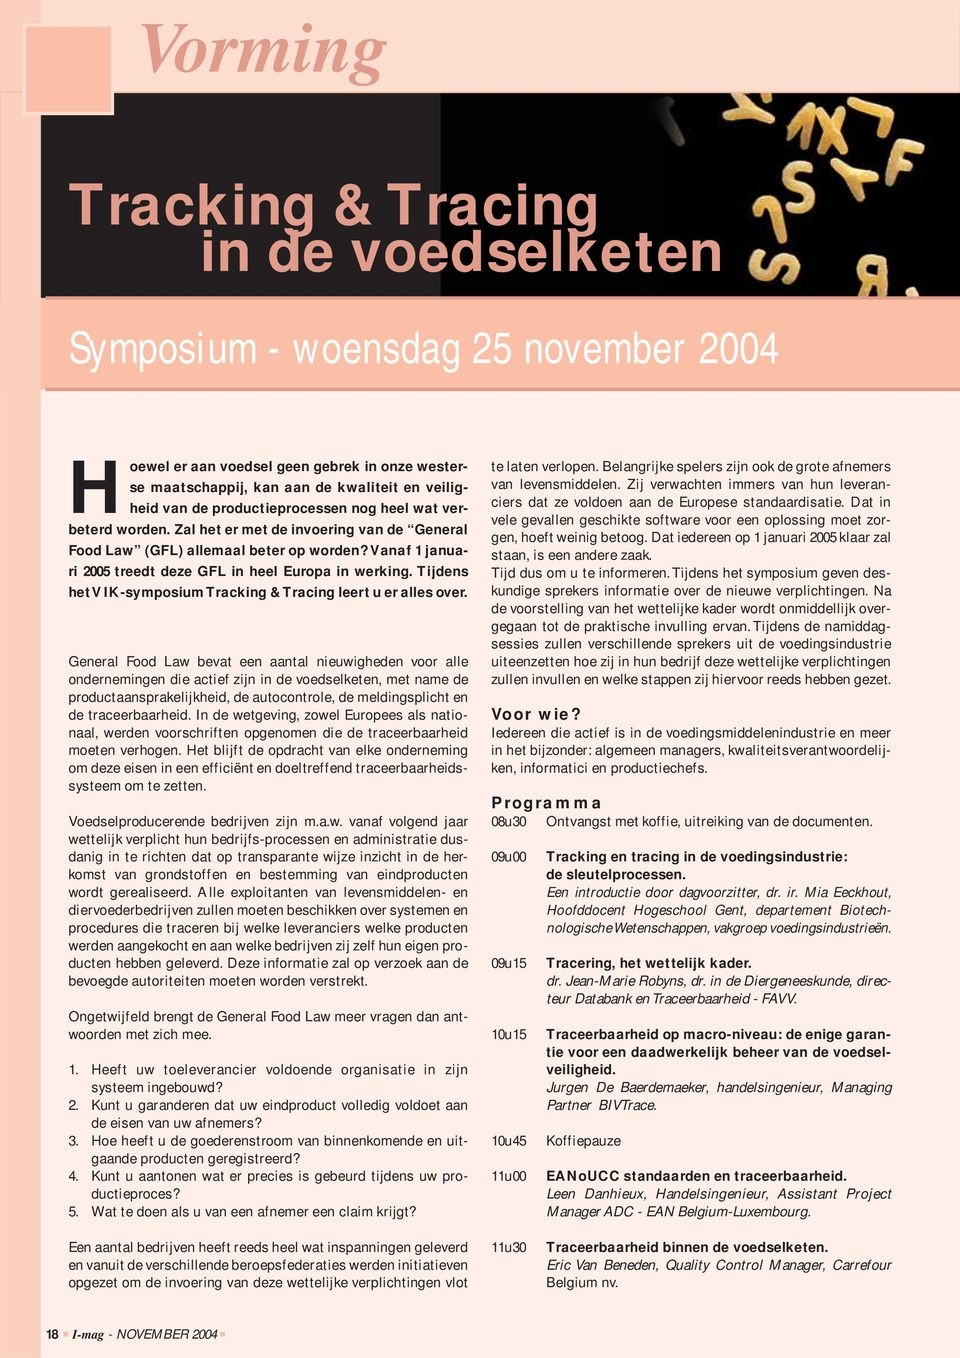 Tijdens het VIK-symposium Tracking & Tracing leert u er alles over.